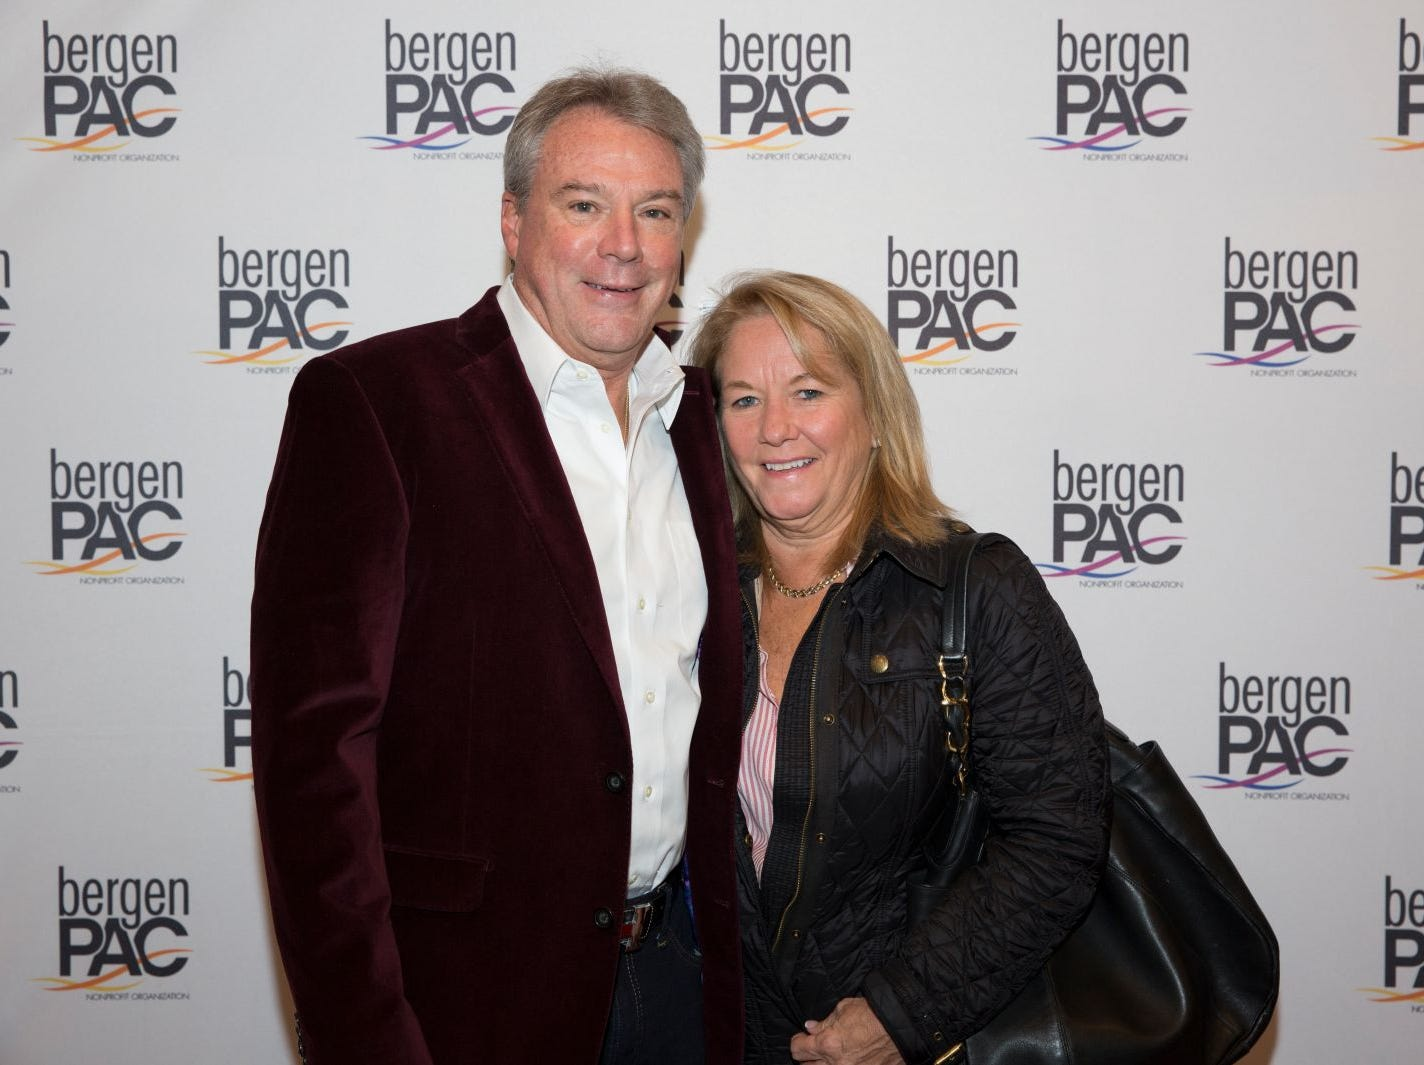 Ken and Barbara Funsch. BergenPAC held its annual fall gala featuring John Fogerty in Englewood. This year's honoree was Fernando Garip, from Wilmington Trust and M&T Bank. 11/08/2018